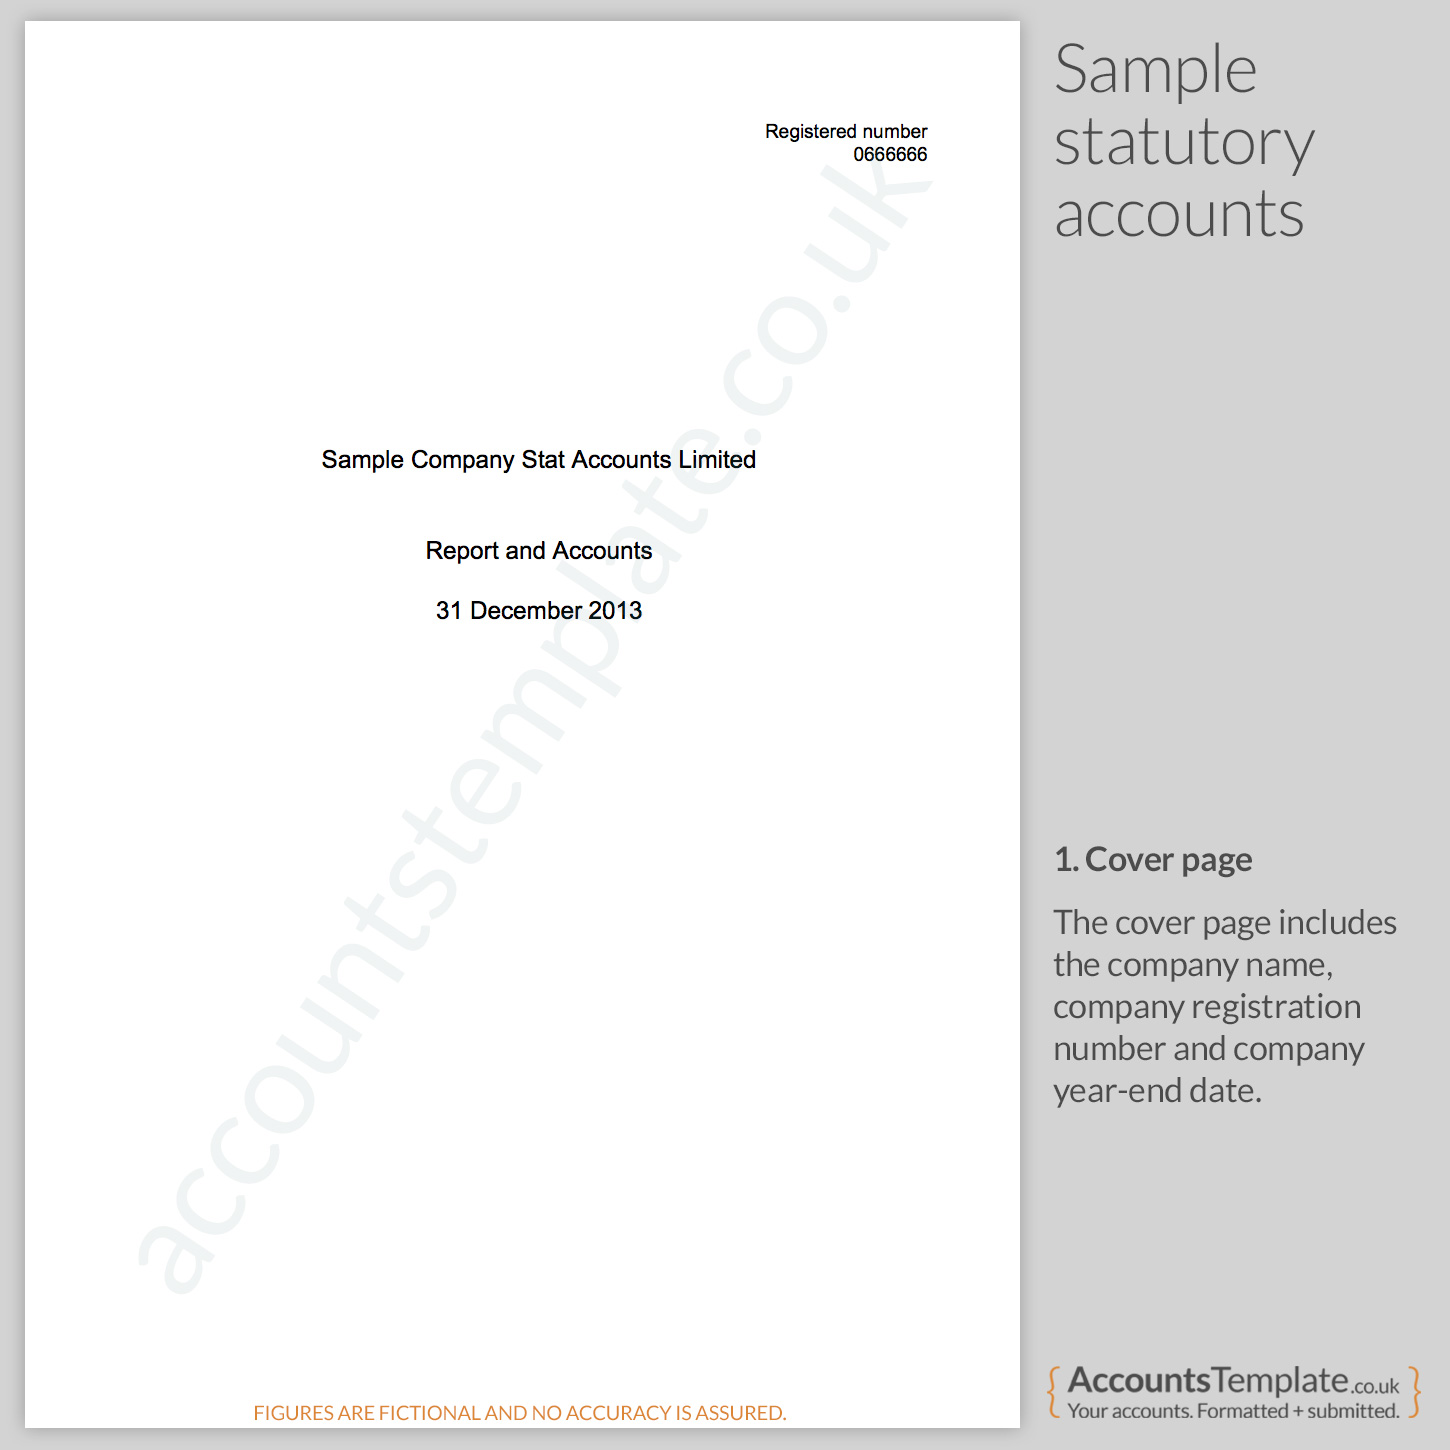 a guide to the statutory accounts format accounts template cover page